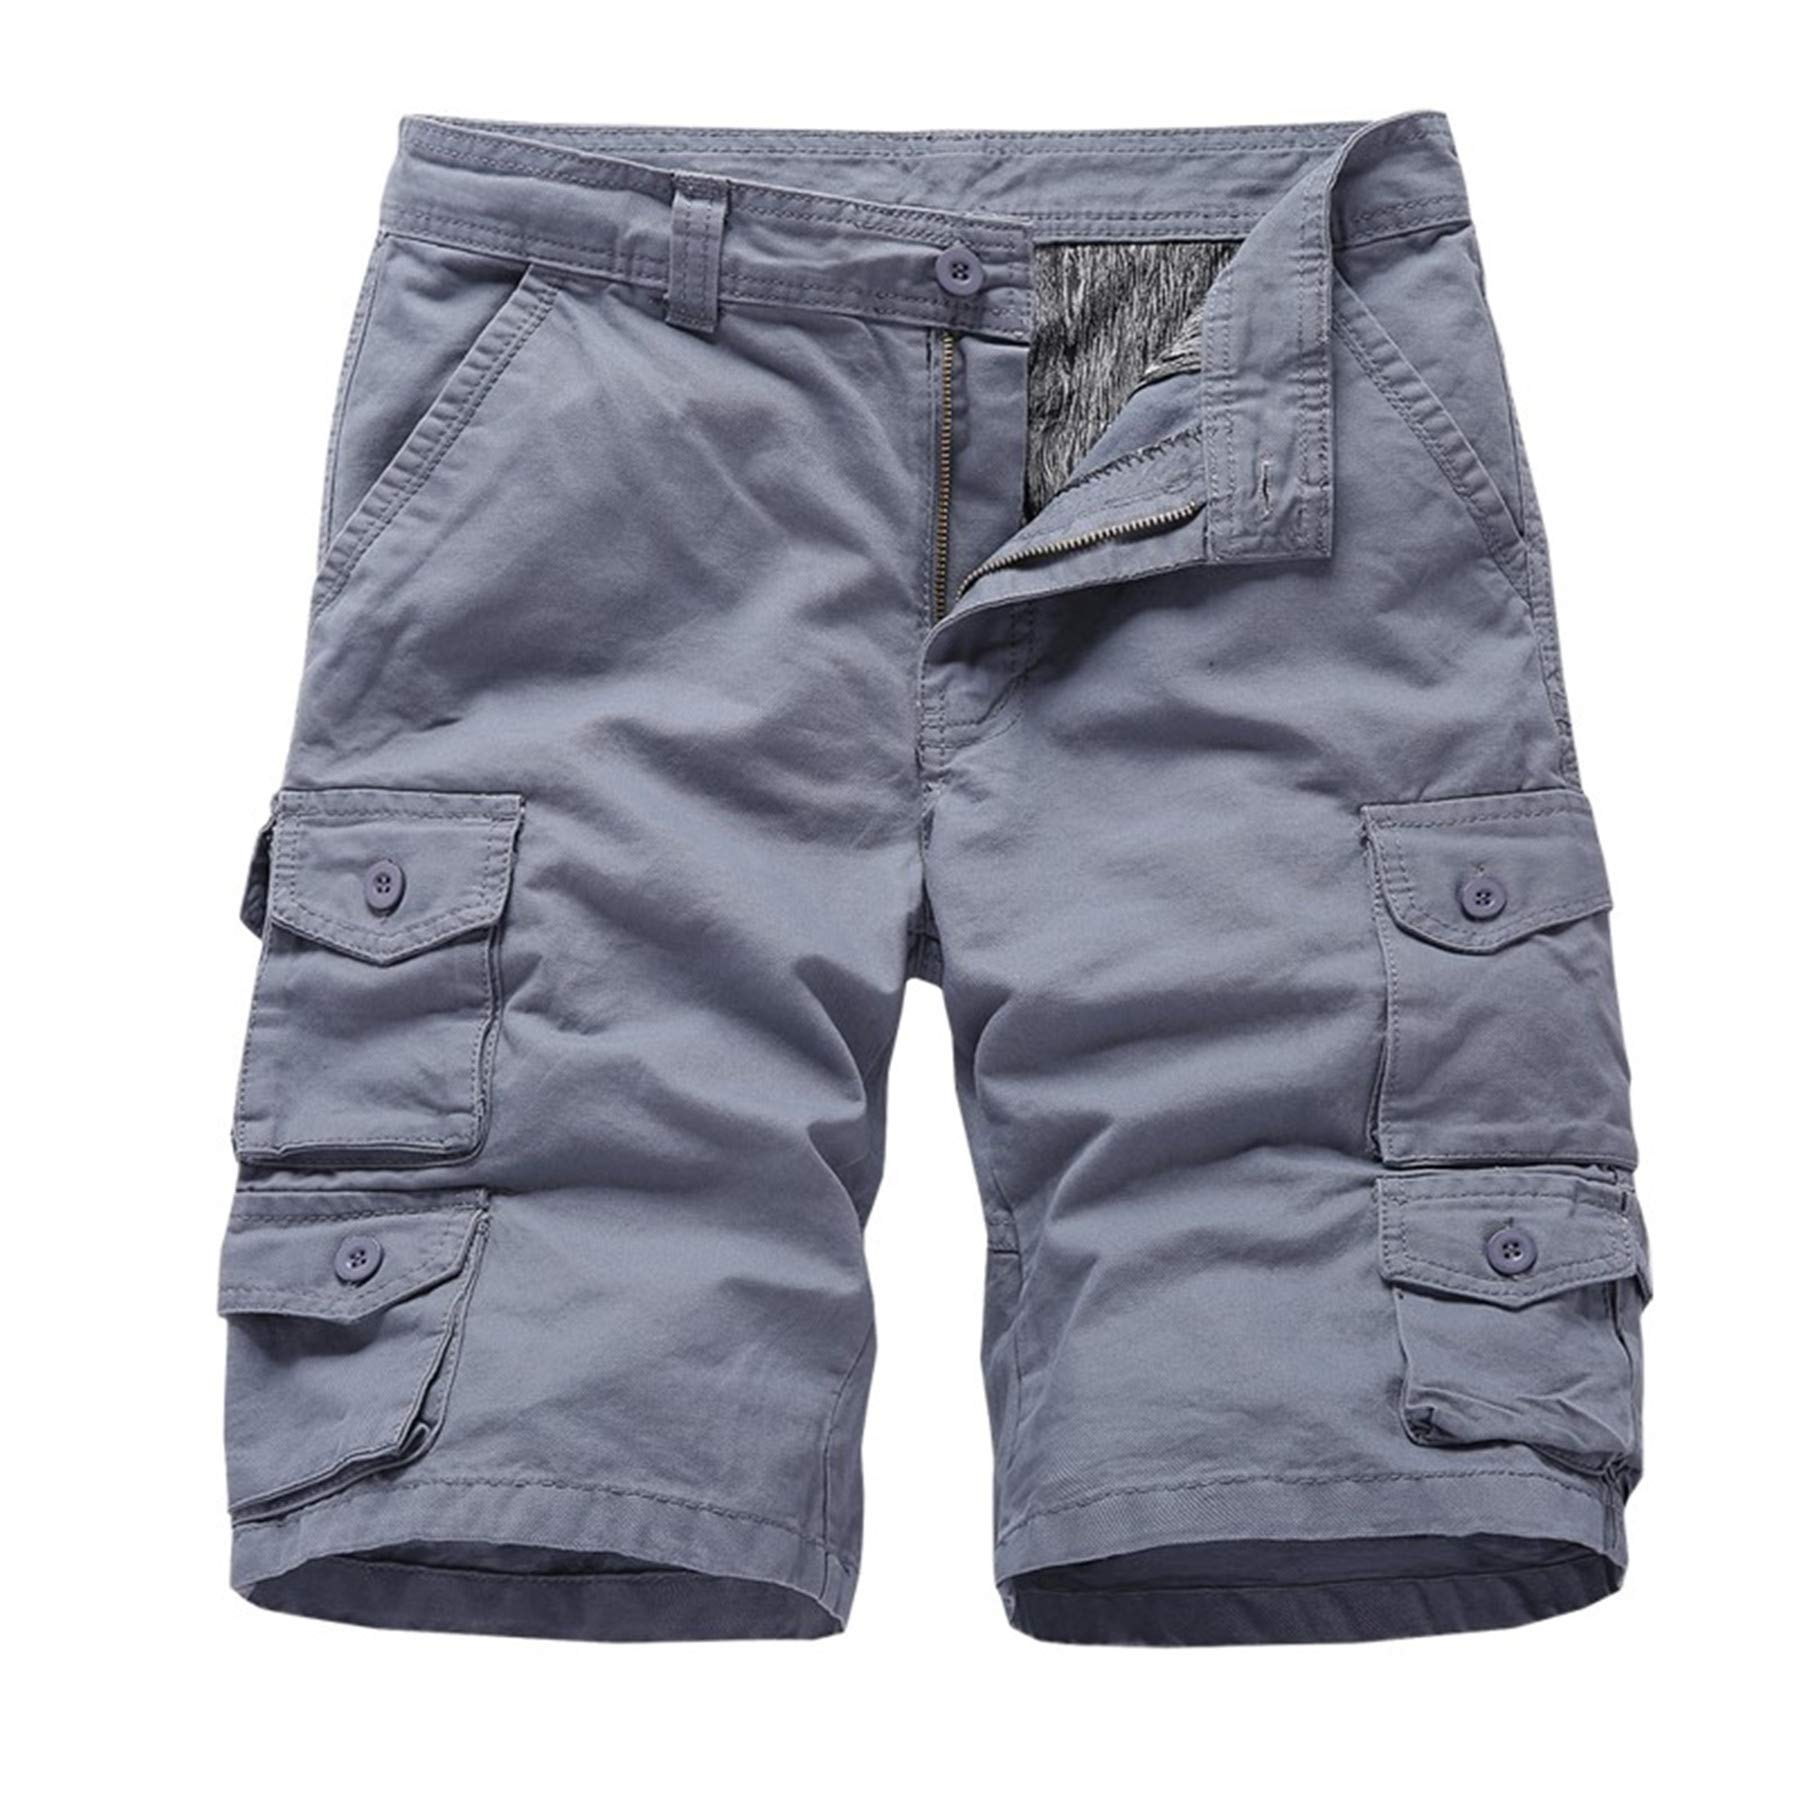 Donci Pants Men's Swim Trunks Quick Dry Beach Shorts with Mesh by Donci Pants